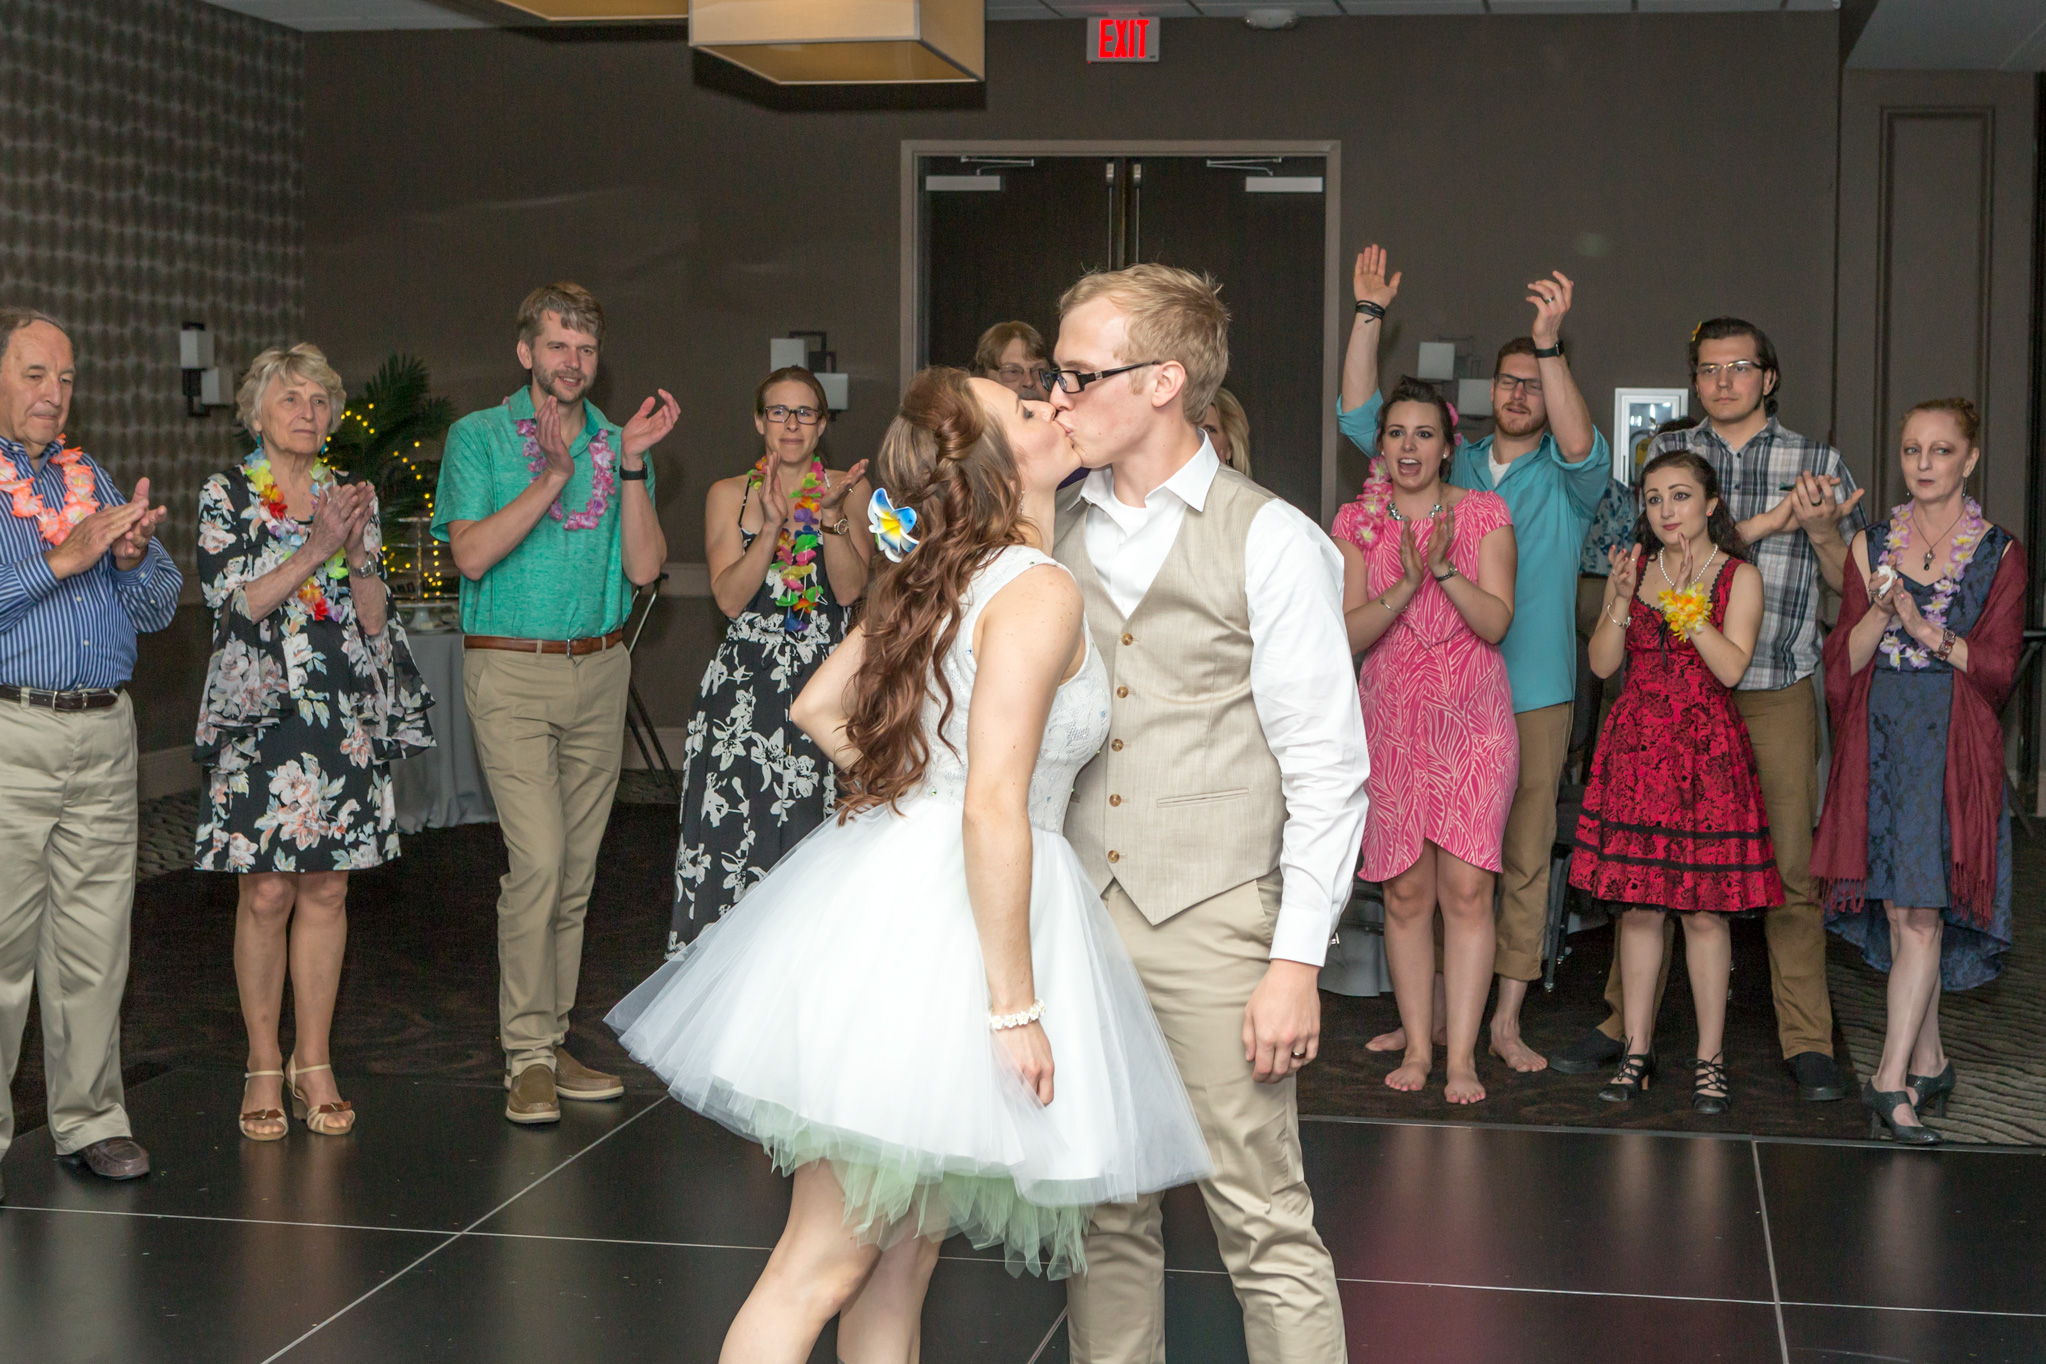 wedding_reception_photographer_1.jpg